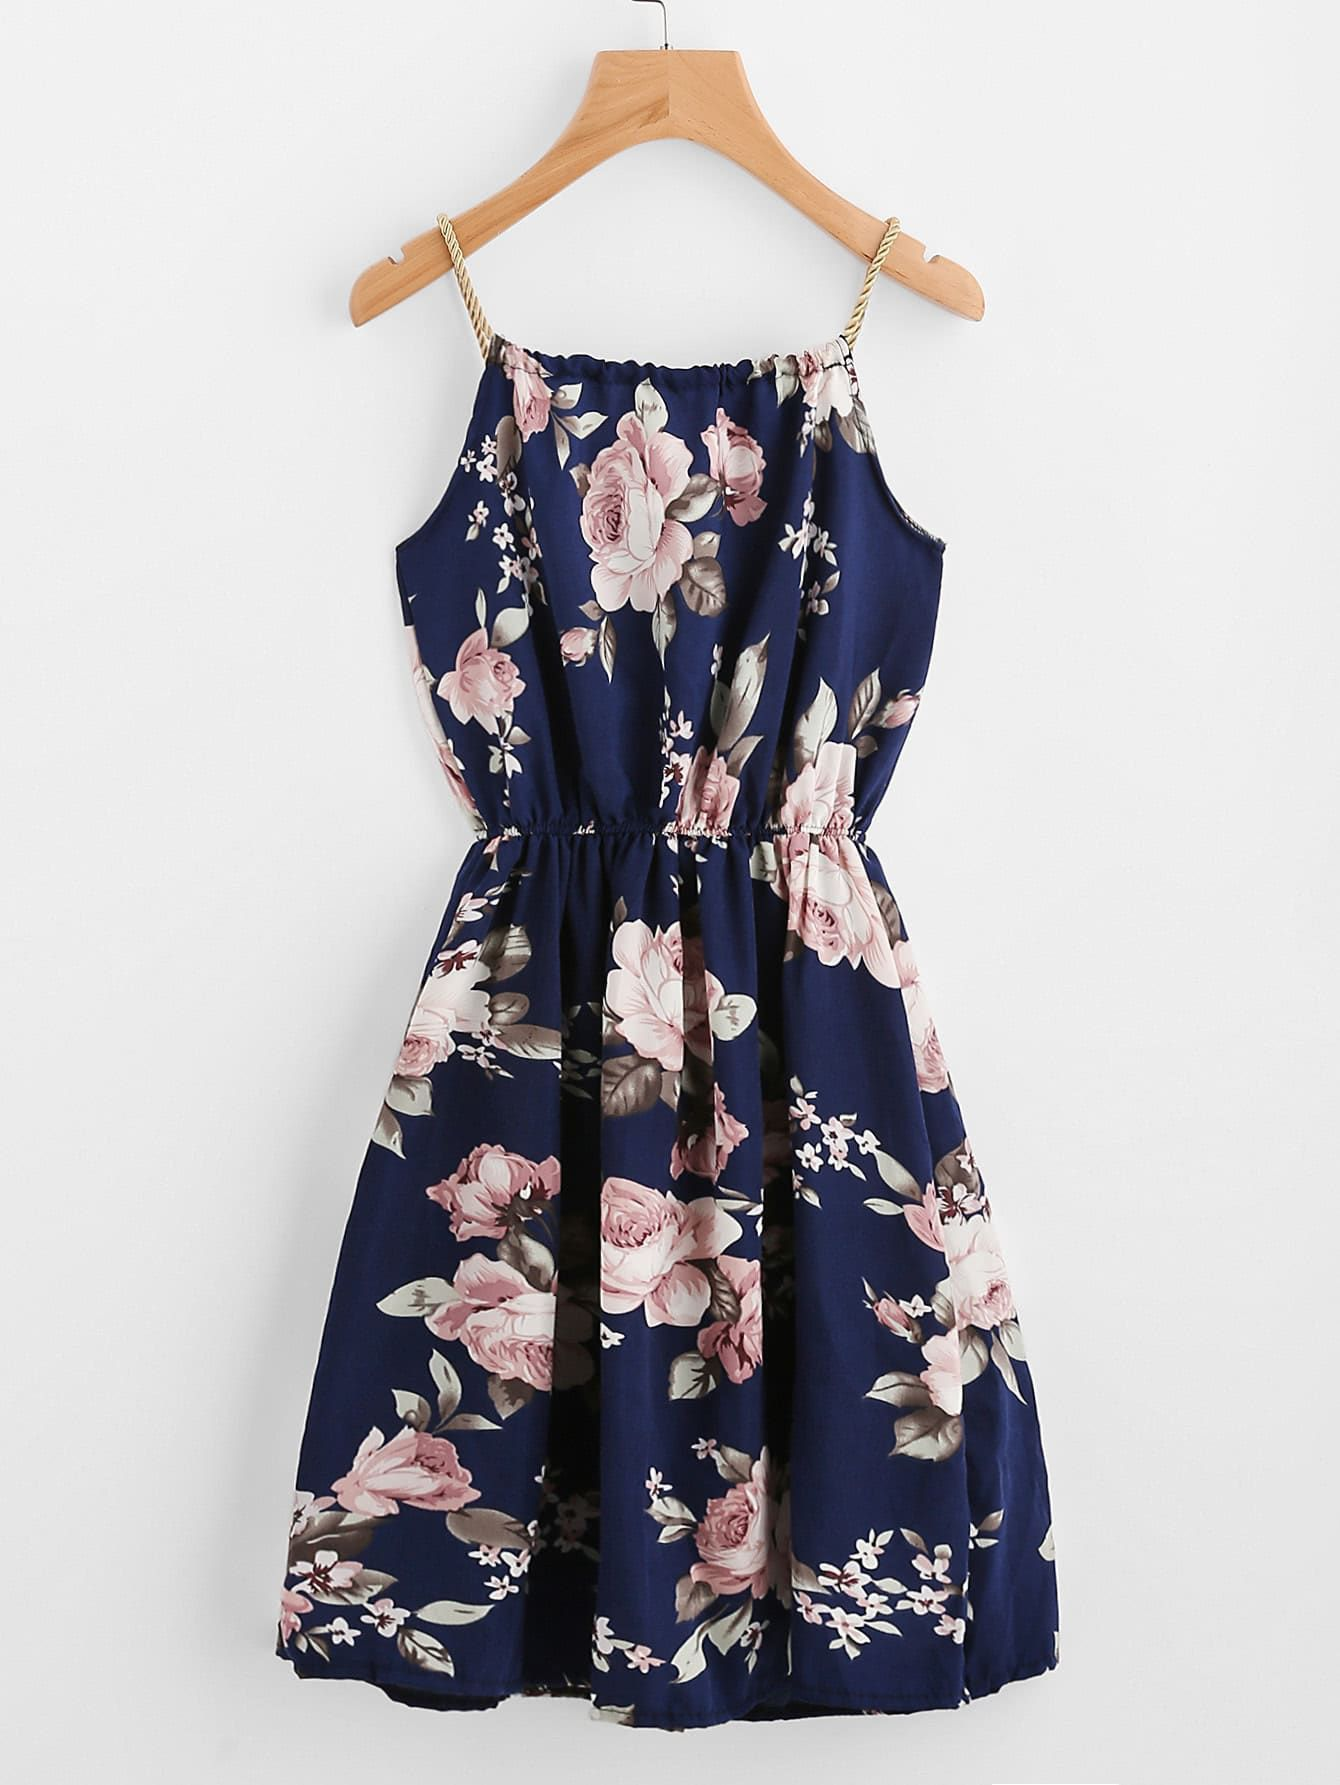 1f17d9f2b1 Boho Slip Floral Fit and Flare Pleated Spaghetti Strap Sleeveless ...